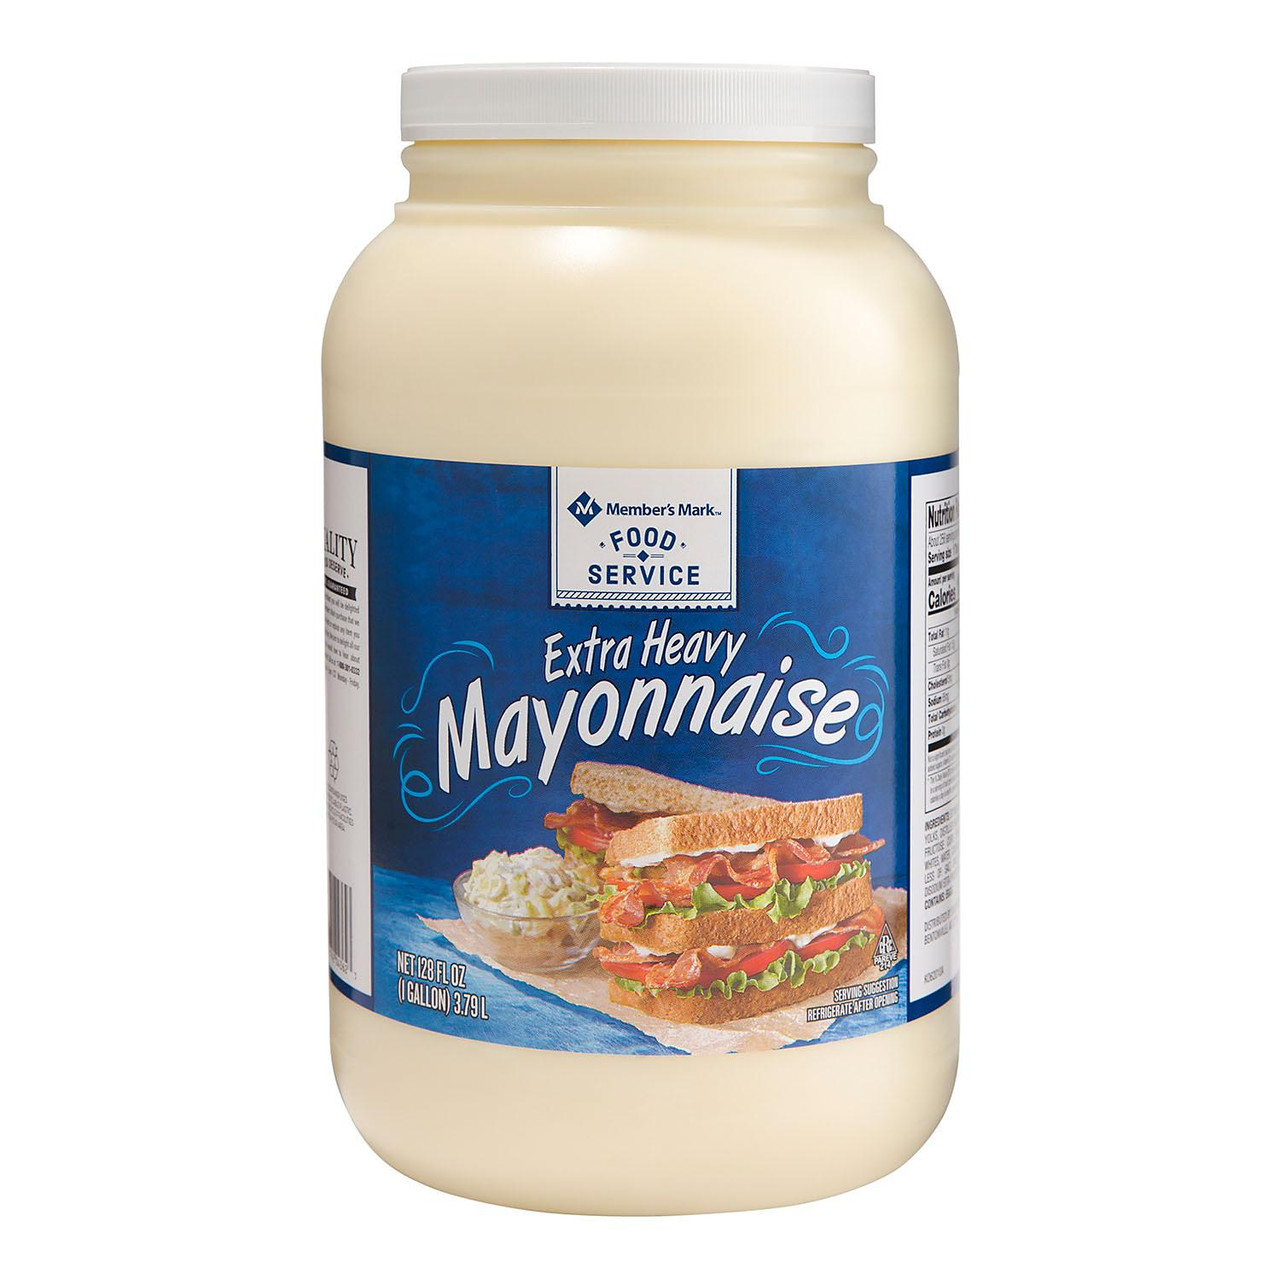 Member's Mark Foodservice Extra Heavy Mayonnaise (1 gal.) - *In Store